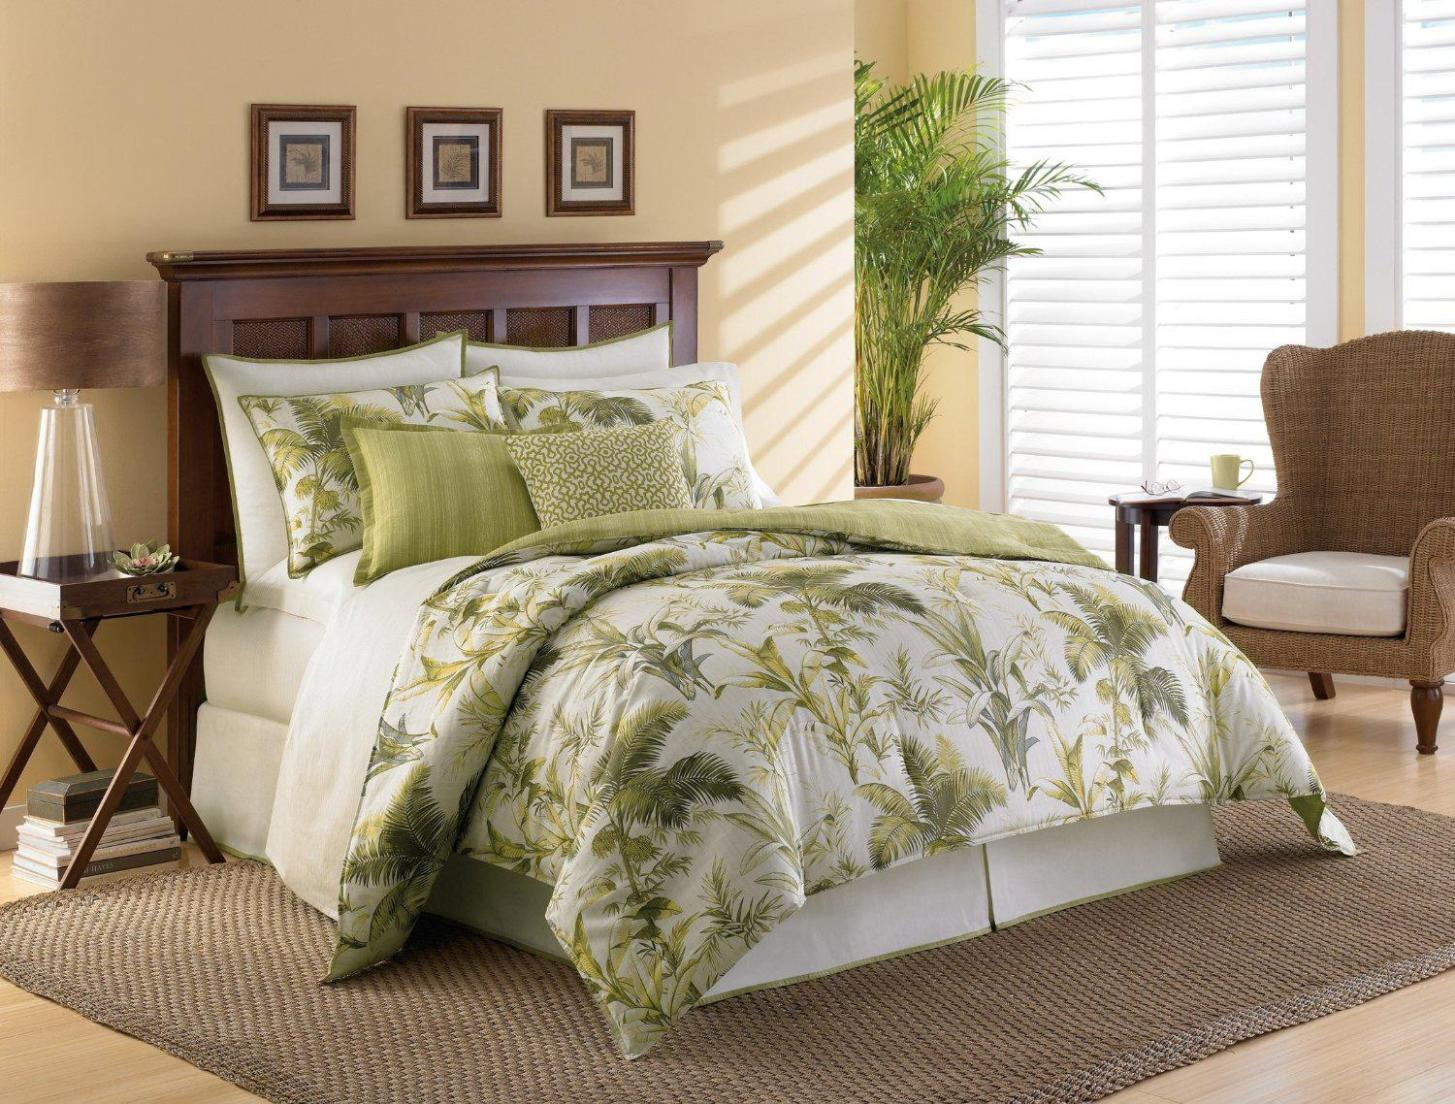 Image of: Palm Tree Bedspread Sets